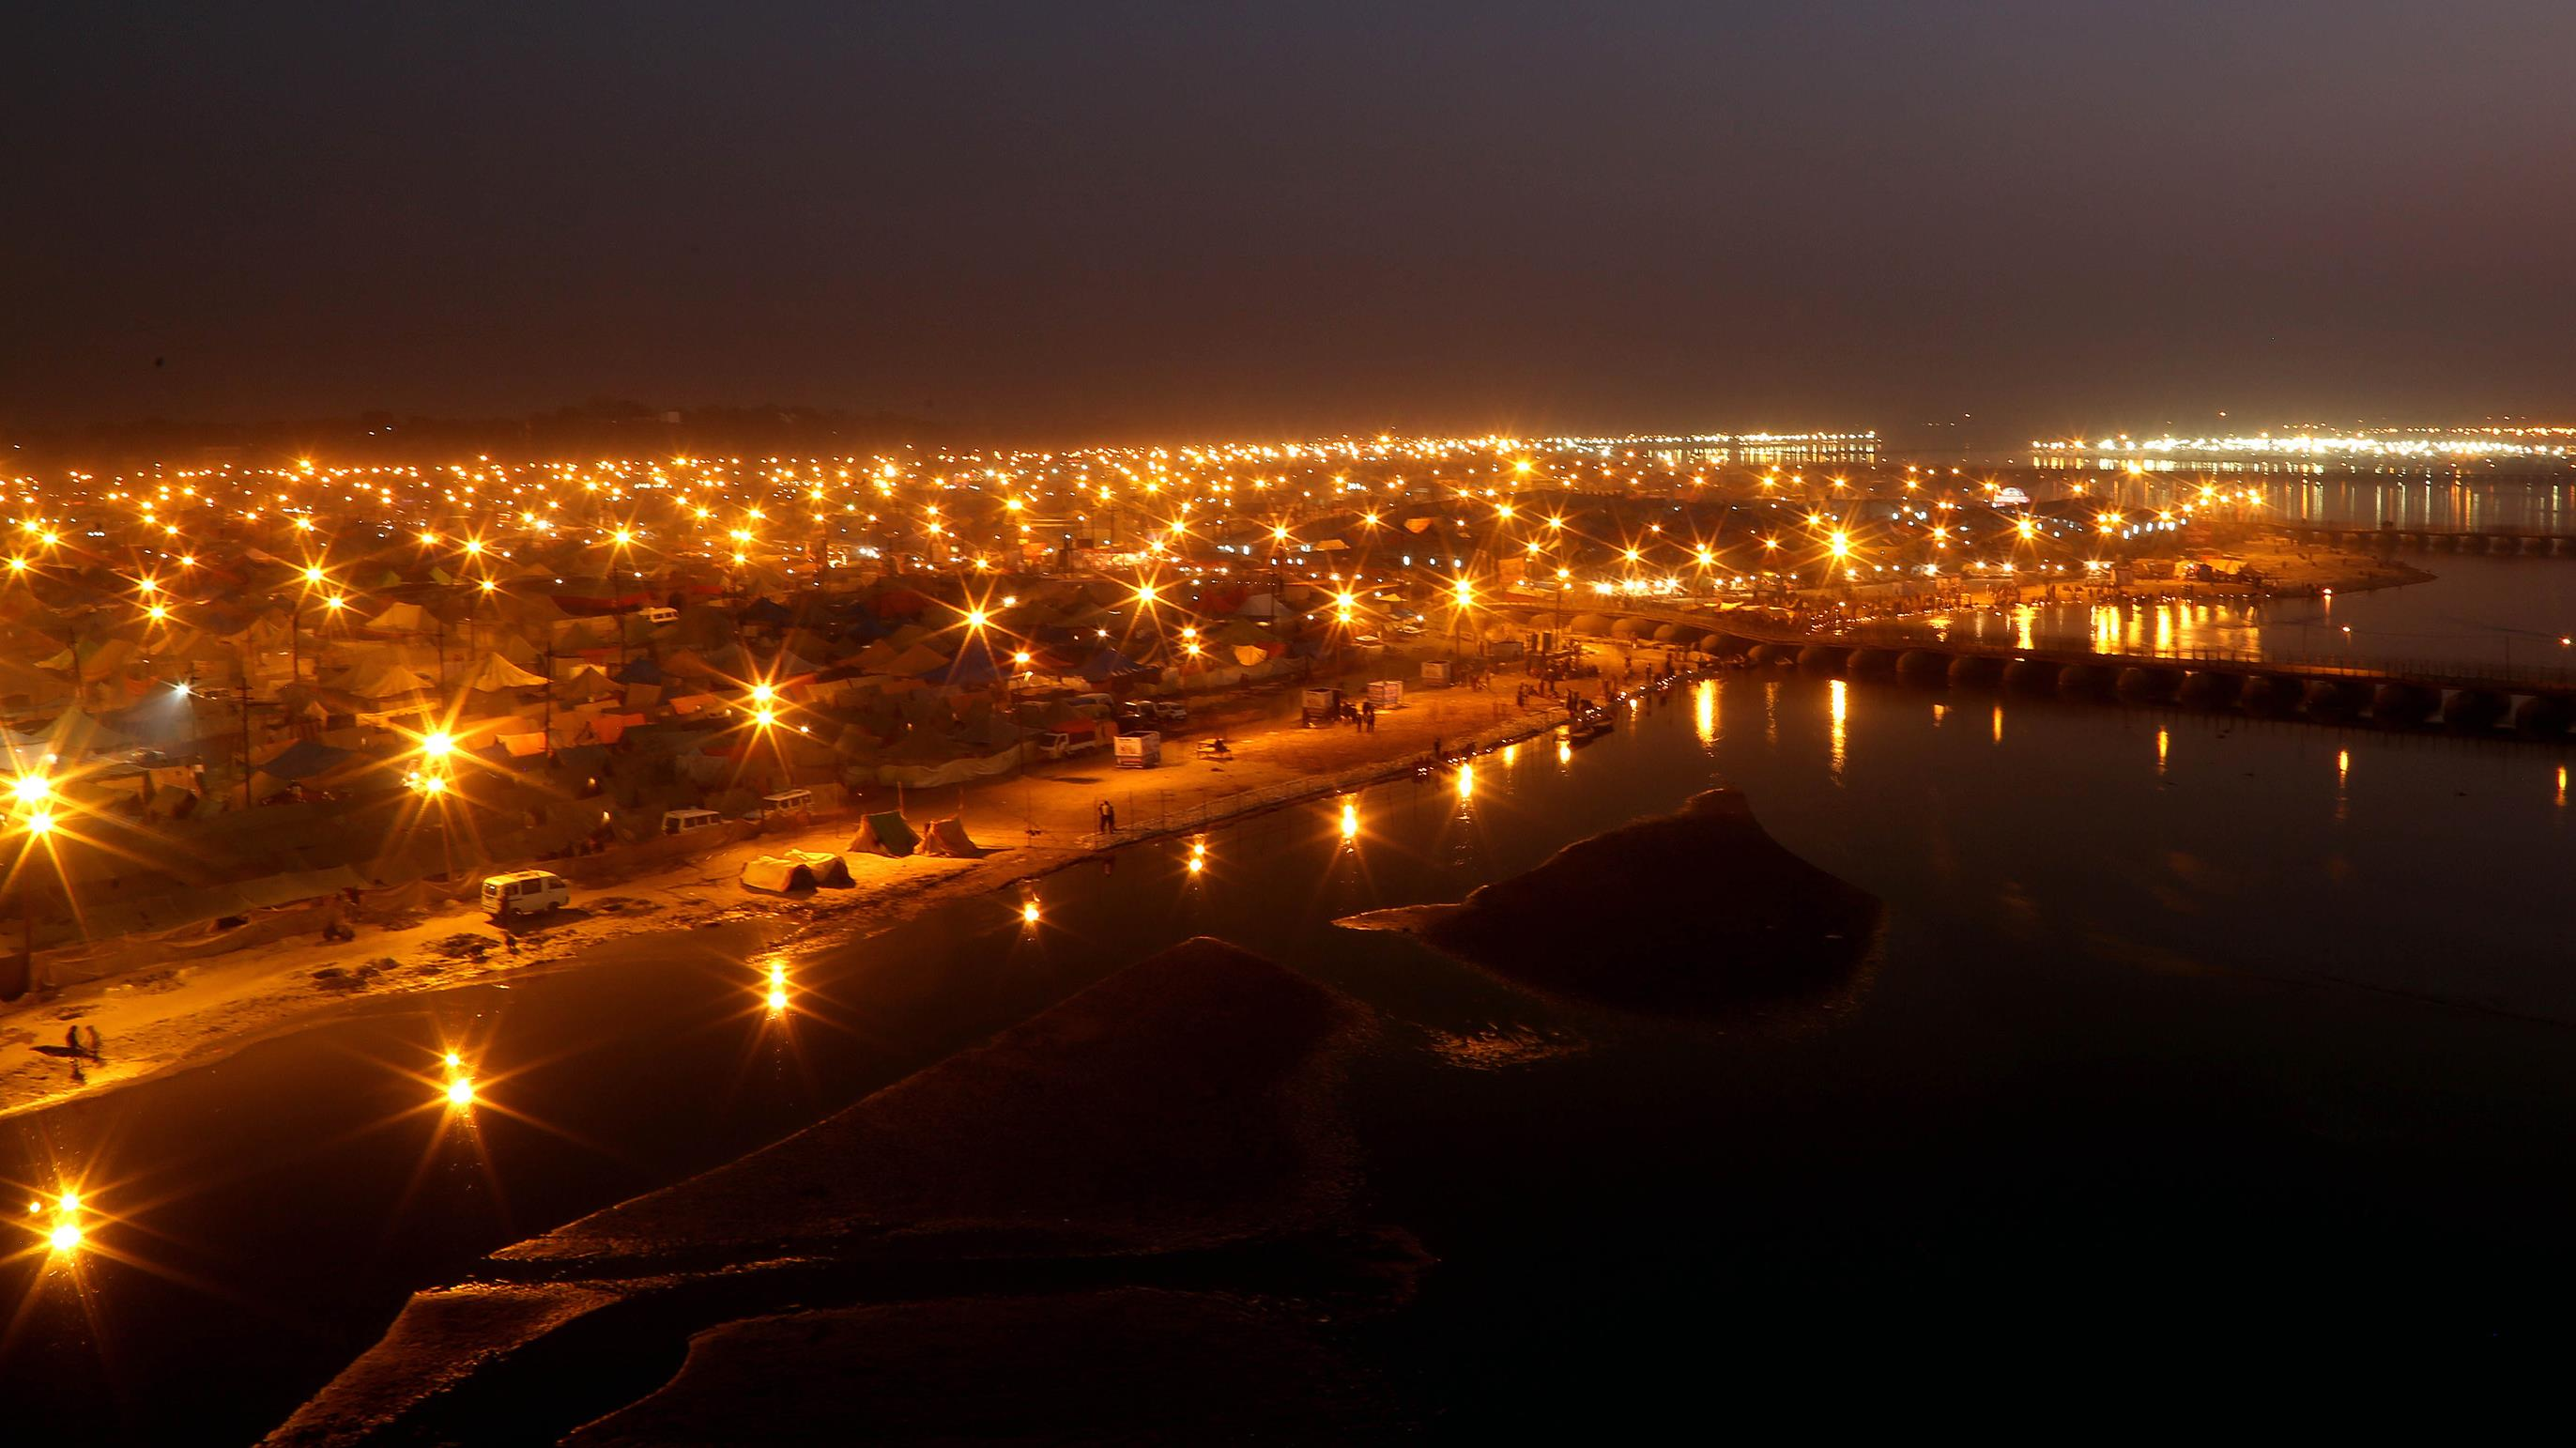 Night view of Sangam – the confluence of rivers Ganga, Yamuna and invisible Saraswati – in Prayagraj where largest largest religious congregation on the planet, Kumbh-Mela is scheduled to be organised from January 15, 2019. Photo courtesy: kumbh.gov.in